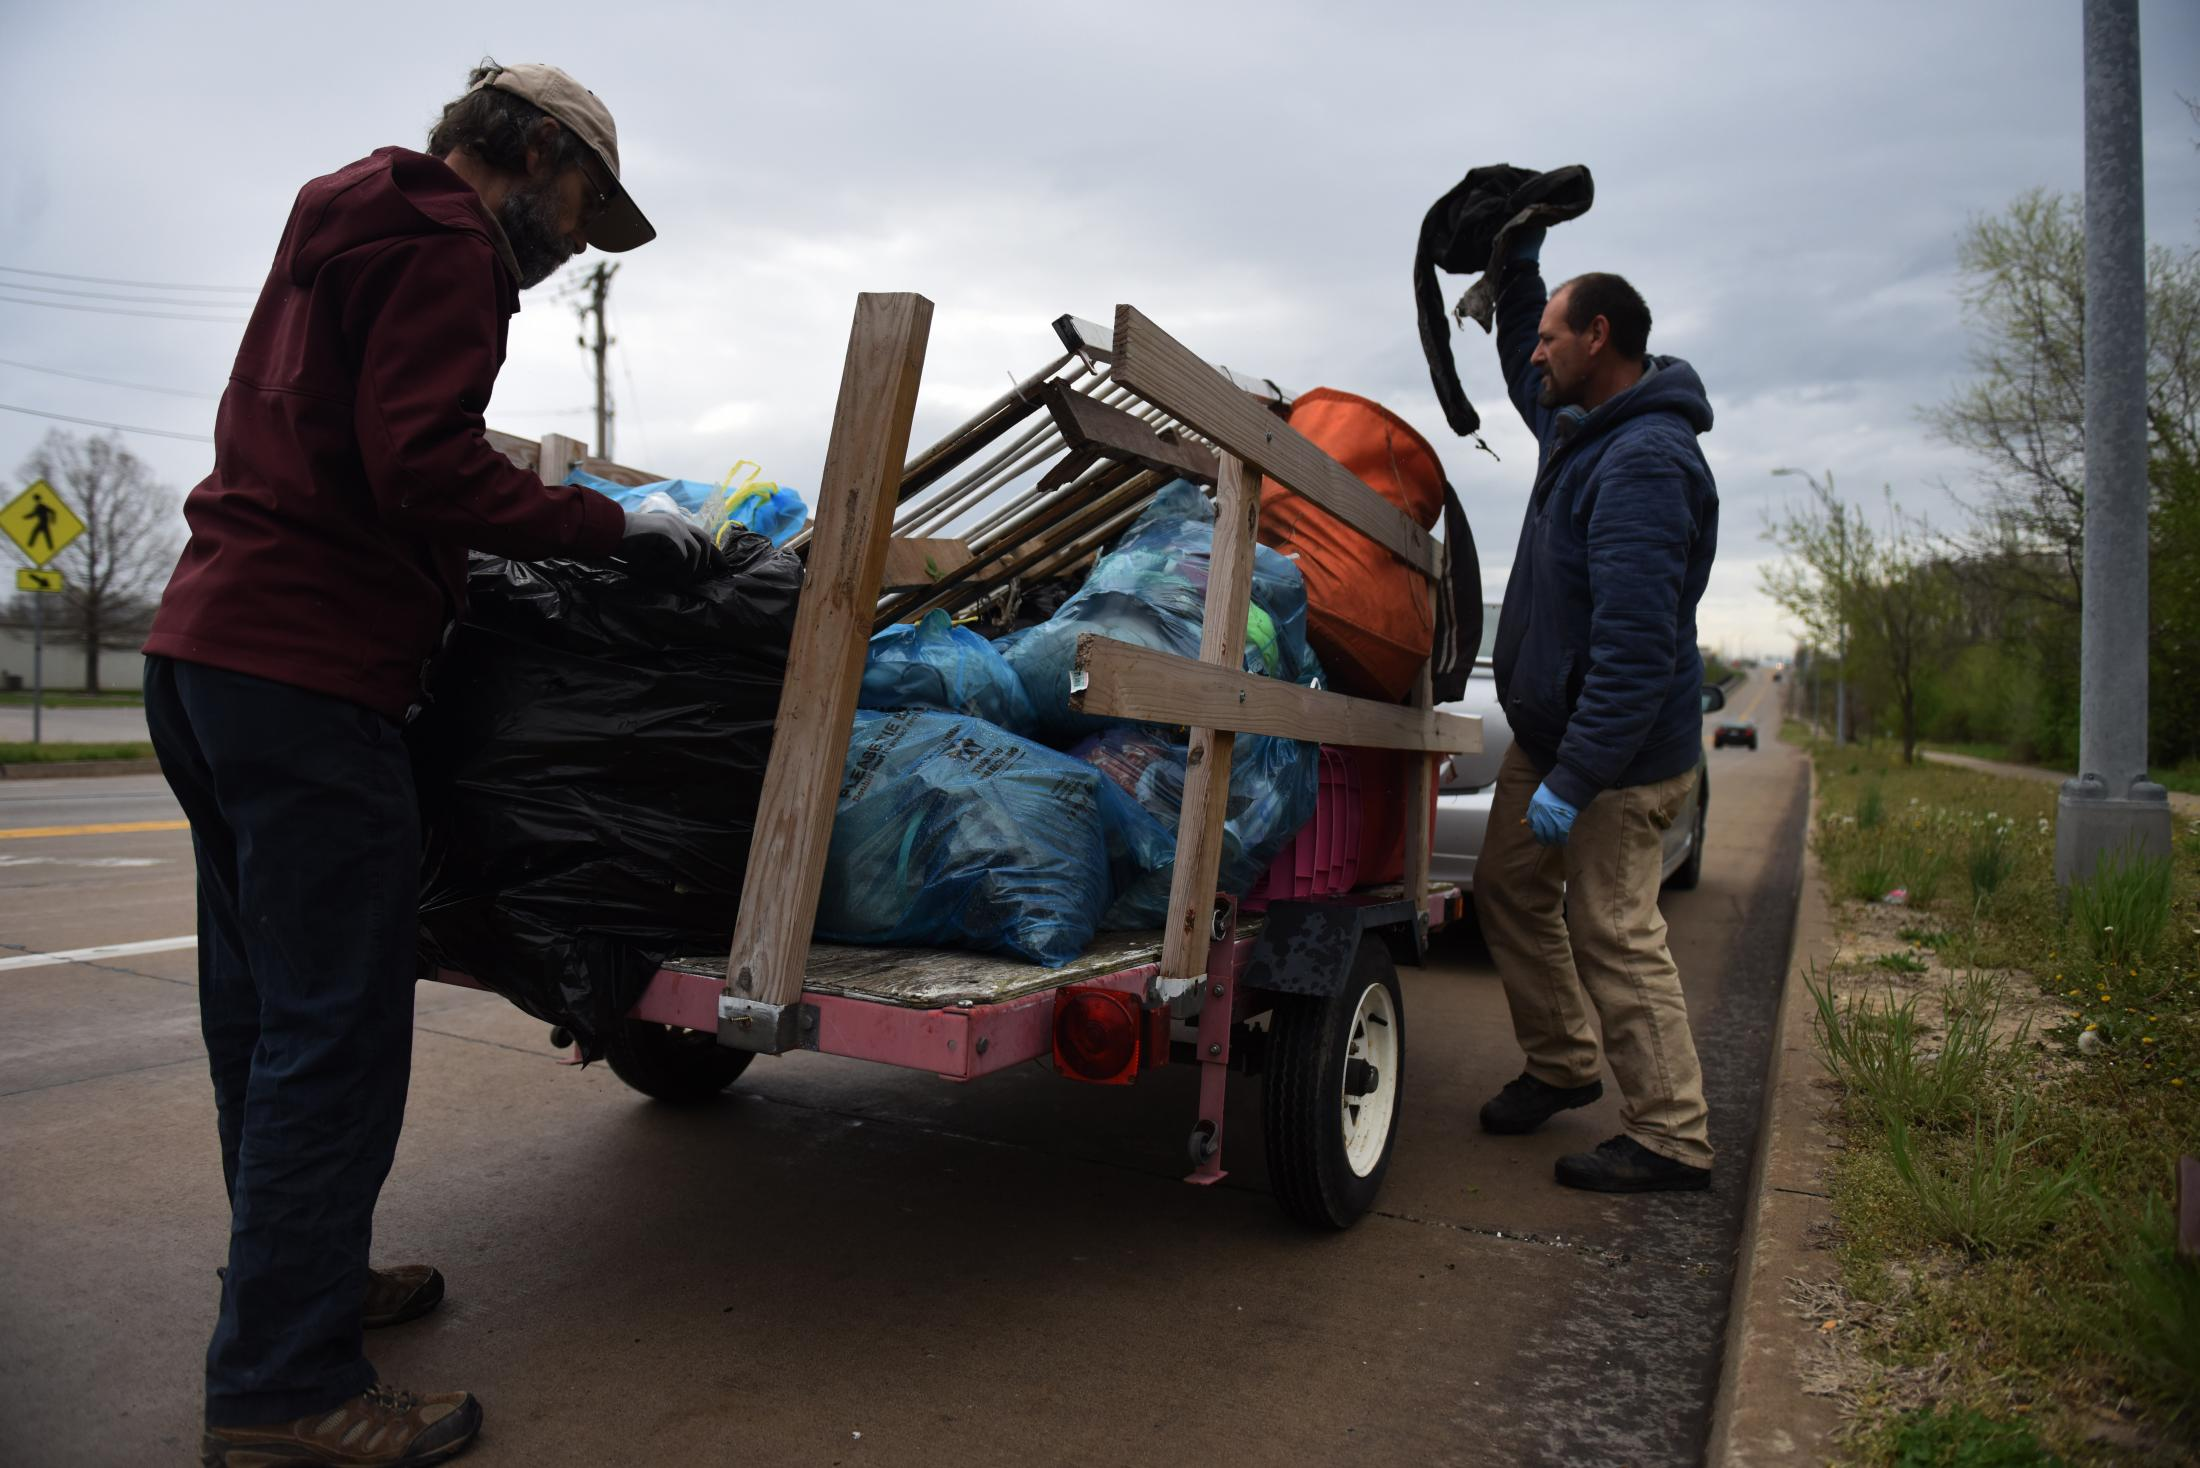 """John Trapp, who organized a cleanup of abandoned homeless camps, carries a box of trash to a trailer April 11. Trapp said the cleanup emerged from an effort to find the homeless a place to sit out the pandemic. """"Everyone deserves to have a place to feel safe."""""""